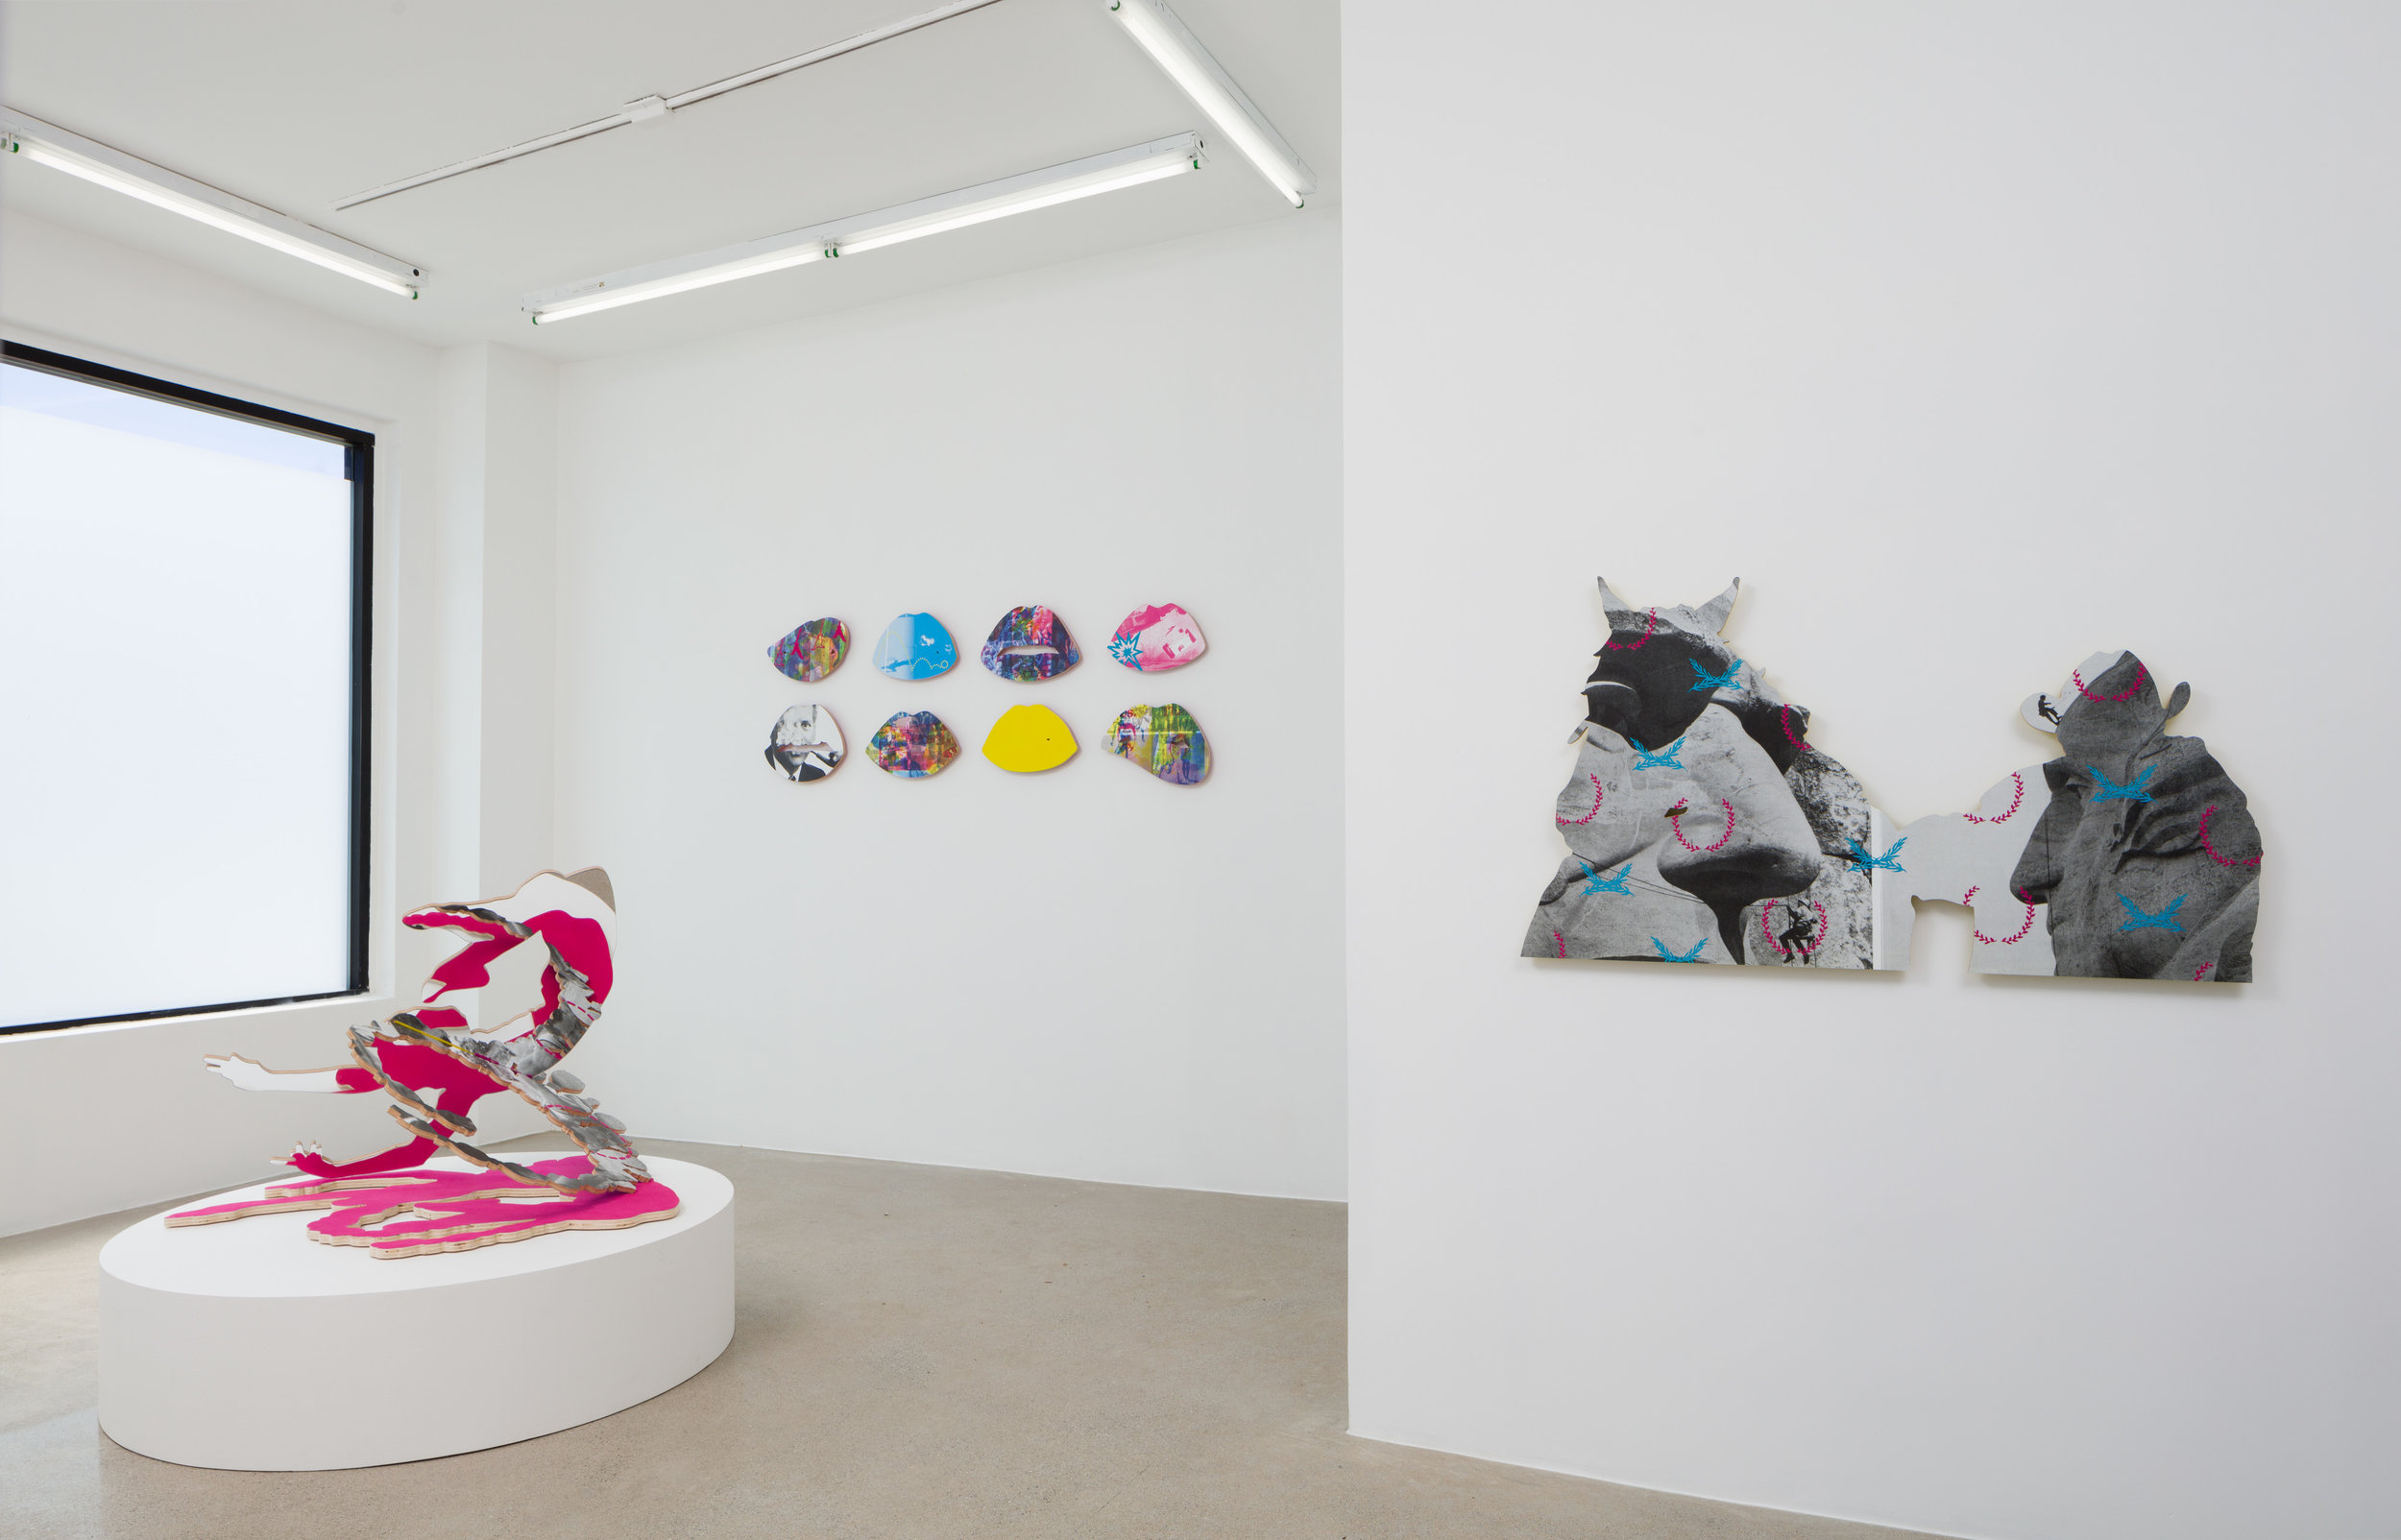 Installation View at AE2 Los Angeles